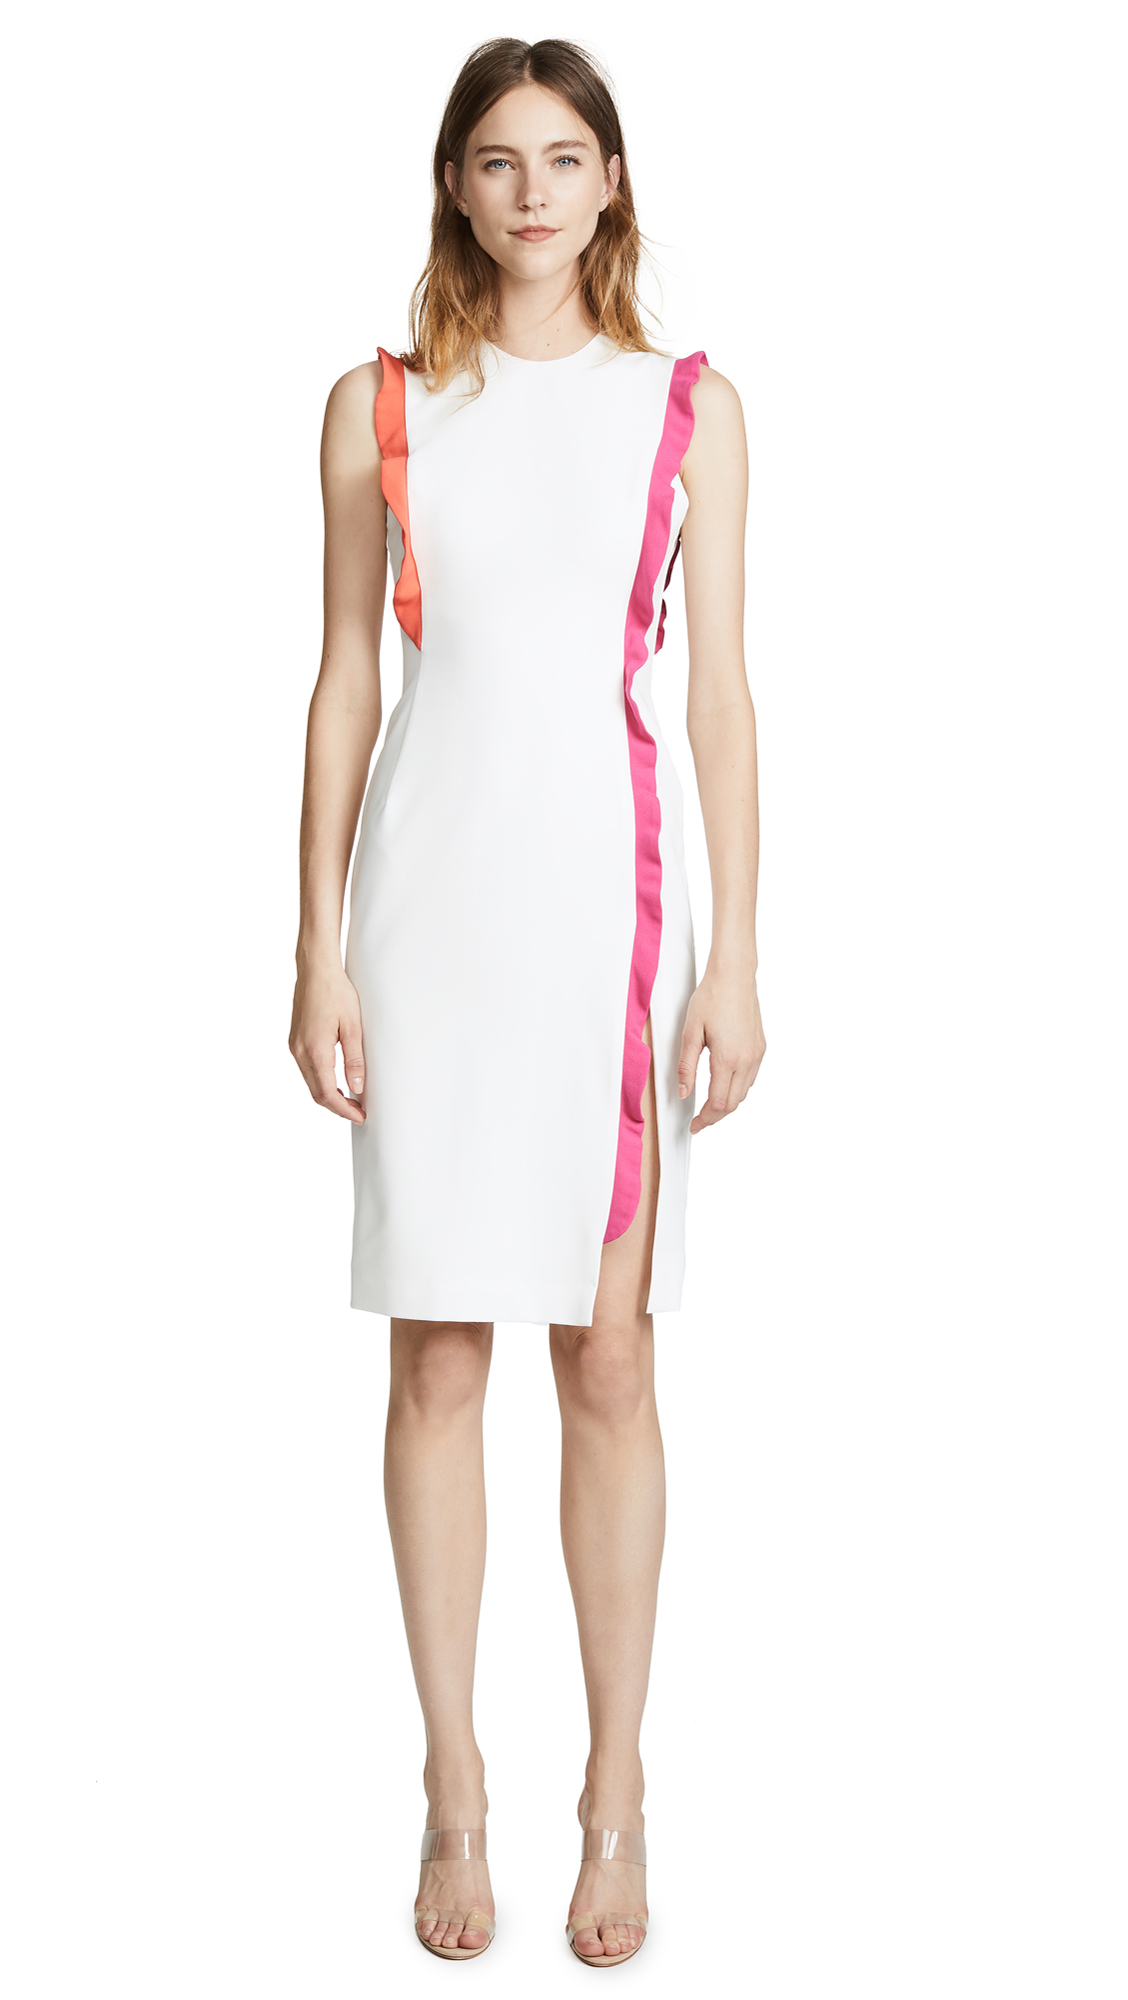 Black Halo Whitley Sheath Dress - Pearl/Canyon Coral/Hot Pink